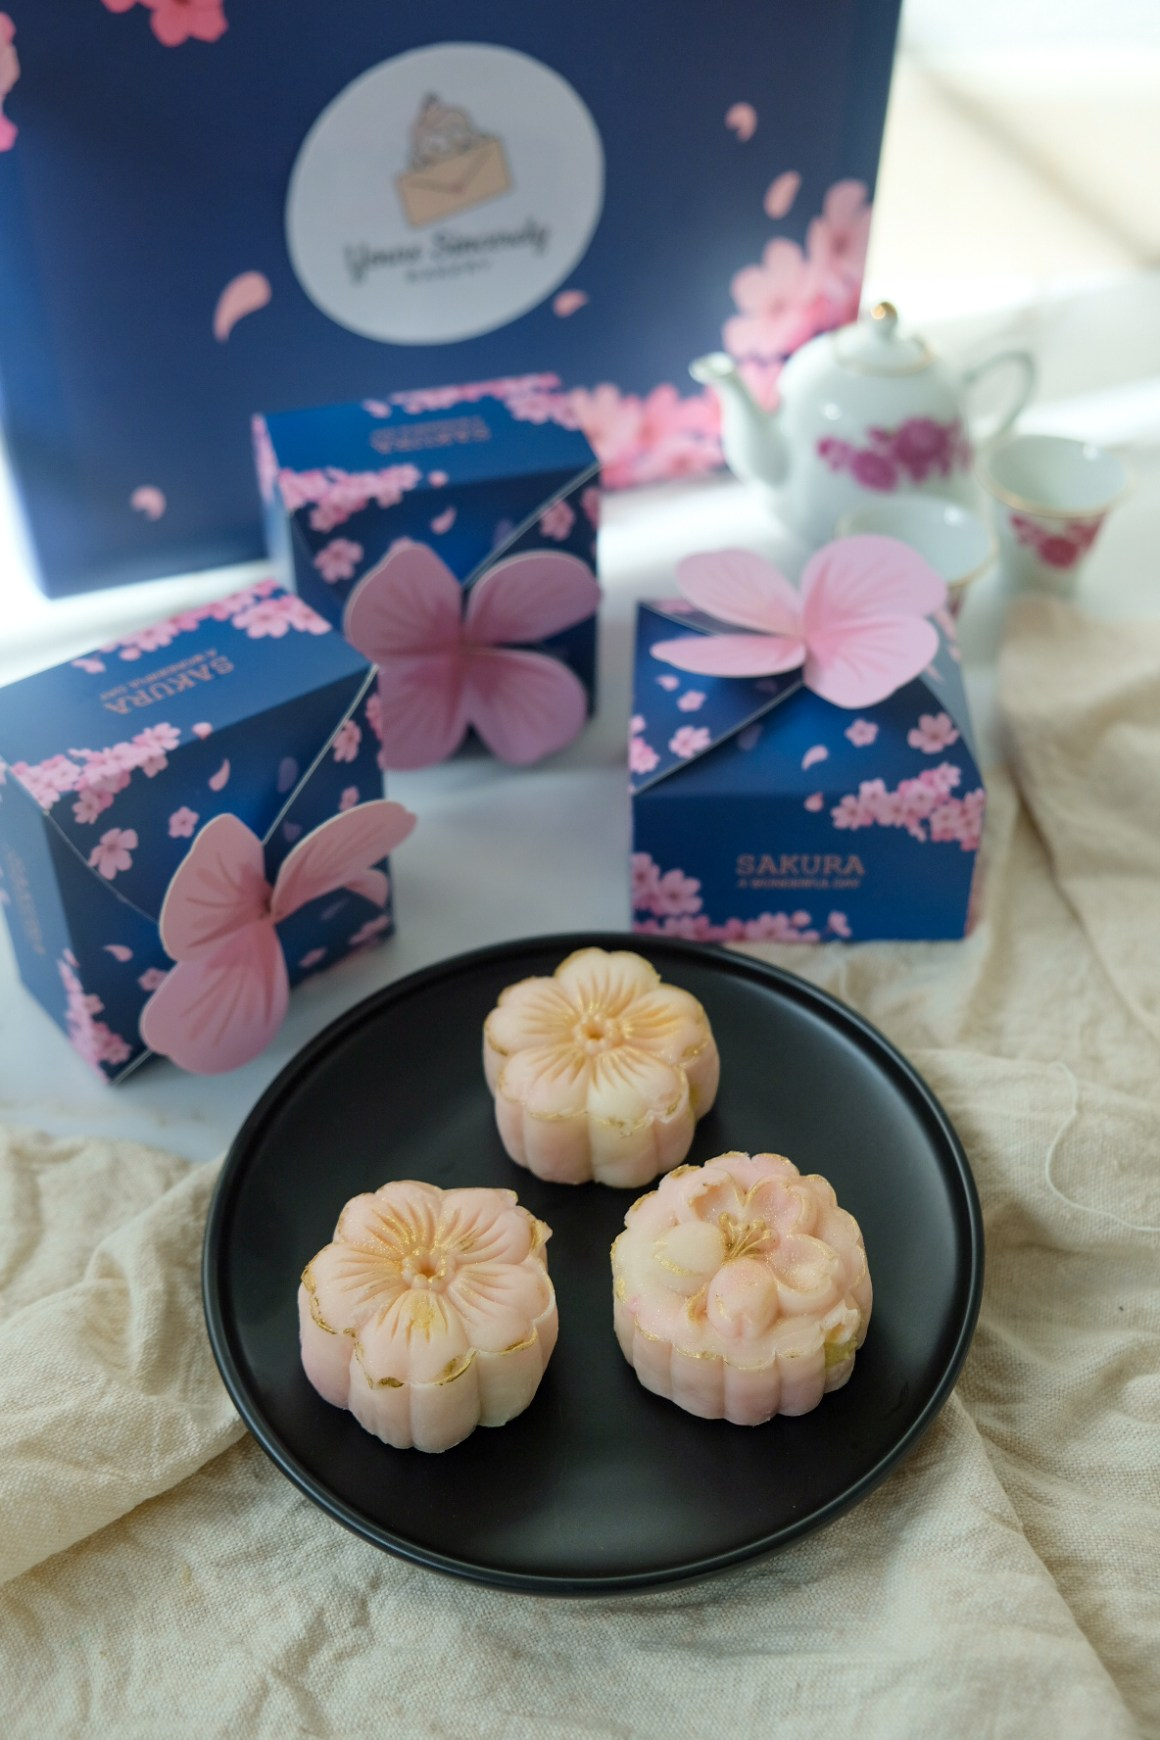 2021 Best Mooncake In Singapore - Yours Sincerely Baked